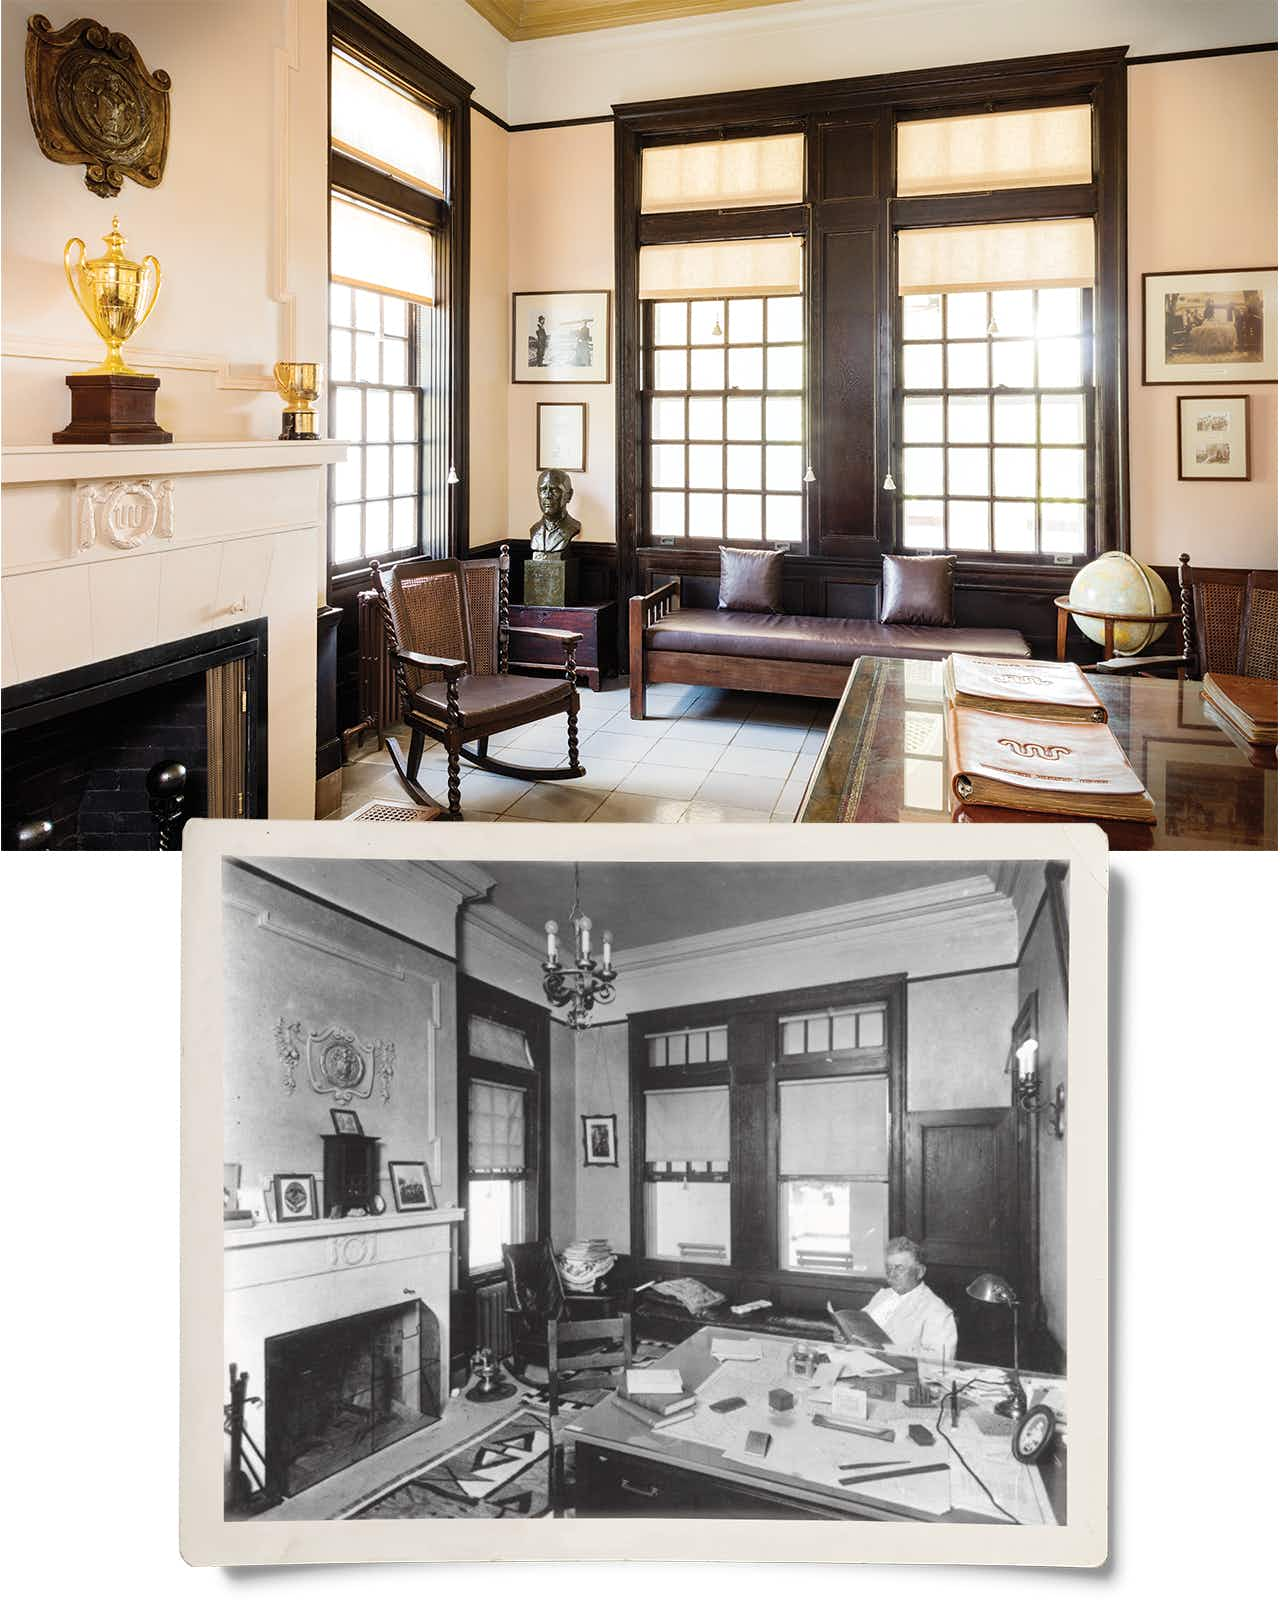 The house includes the original office of Captain King's son-in-law Robert J. Kleberg Sr., who is pictured in the inset photo.